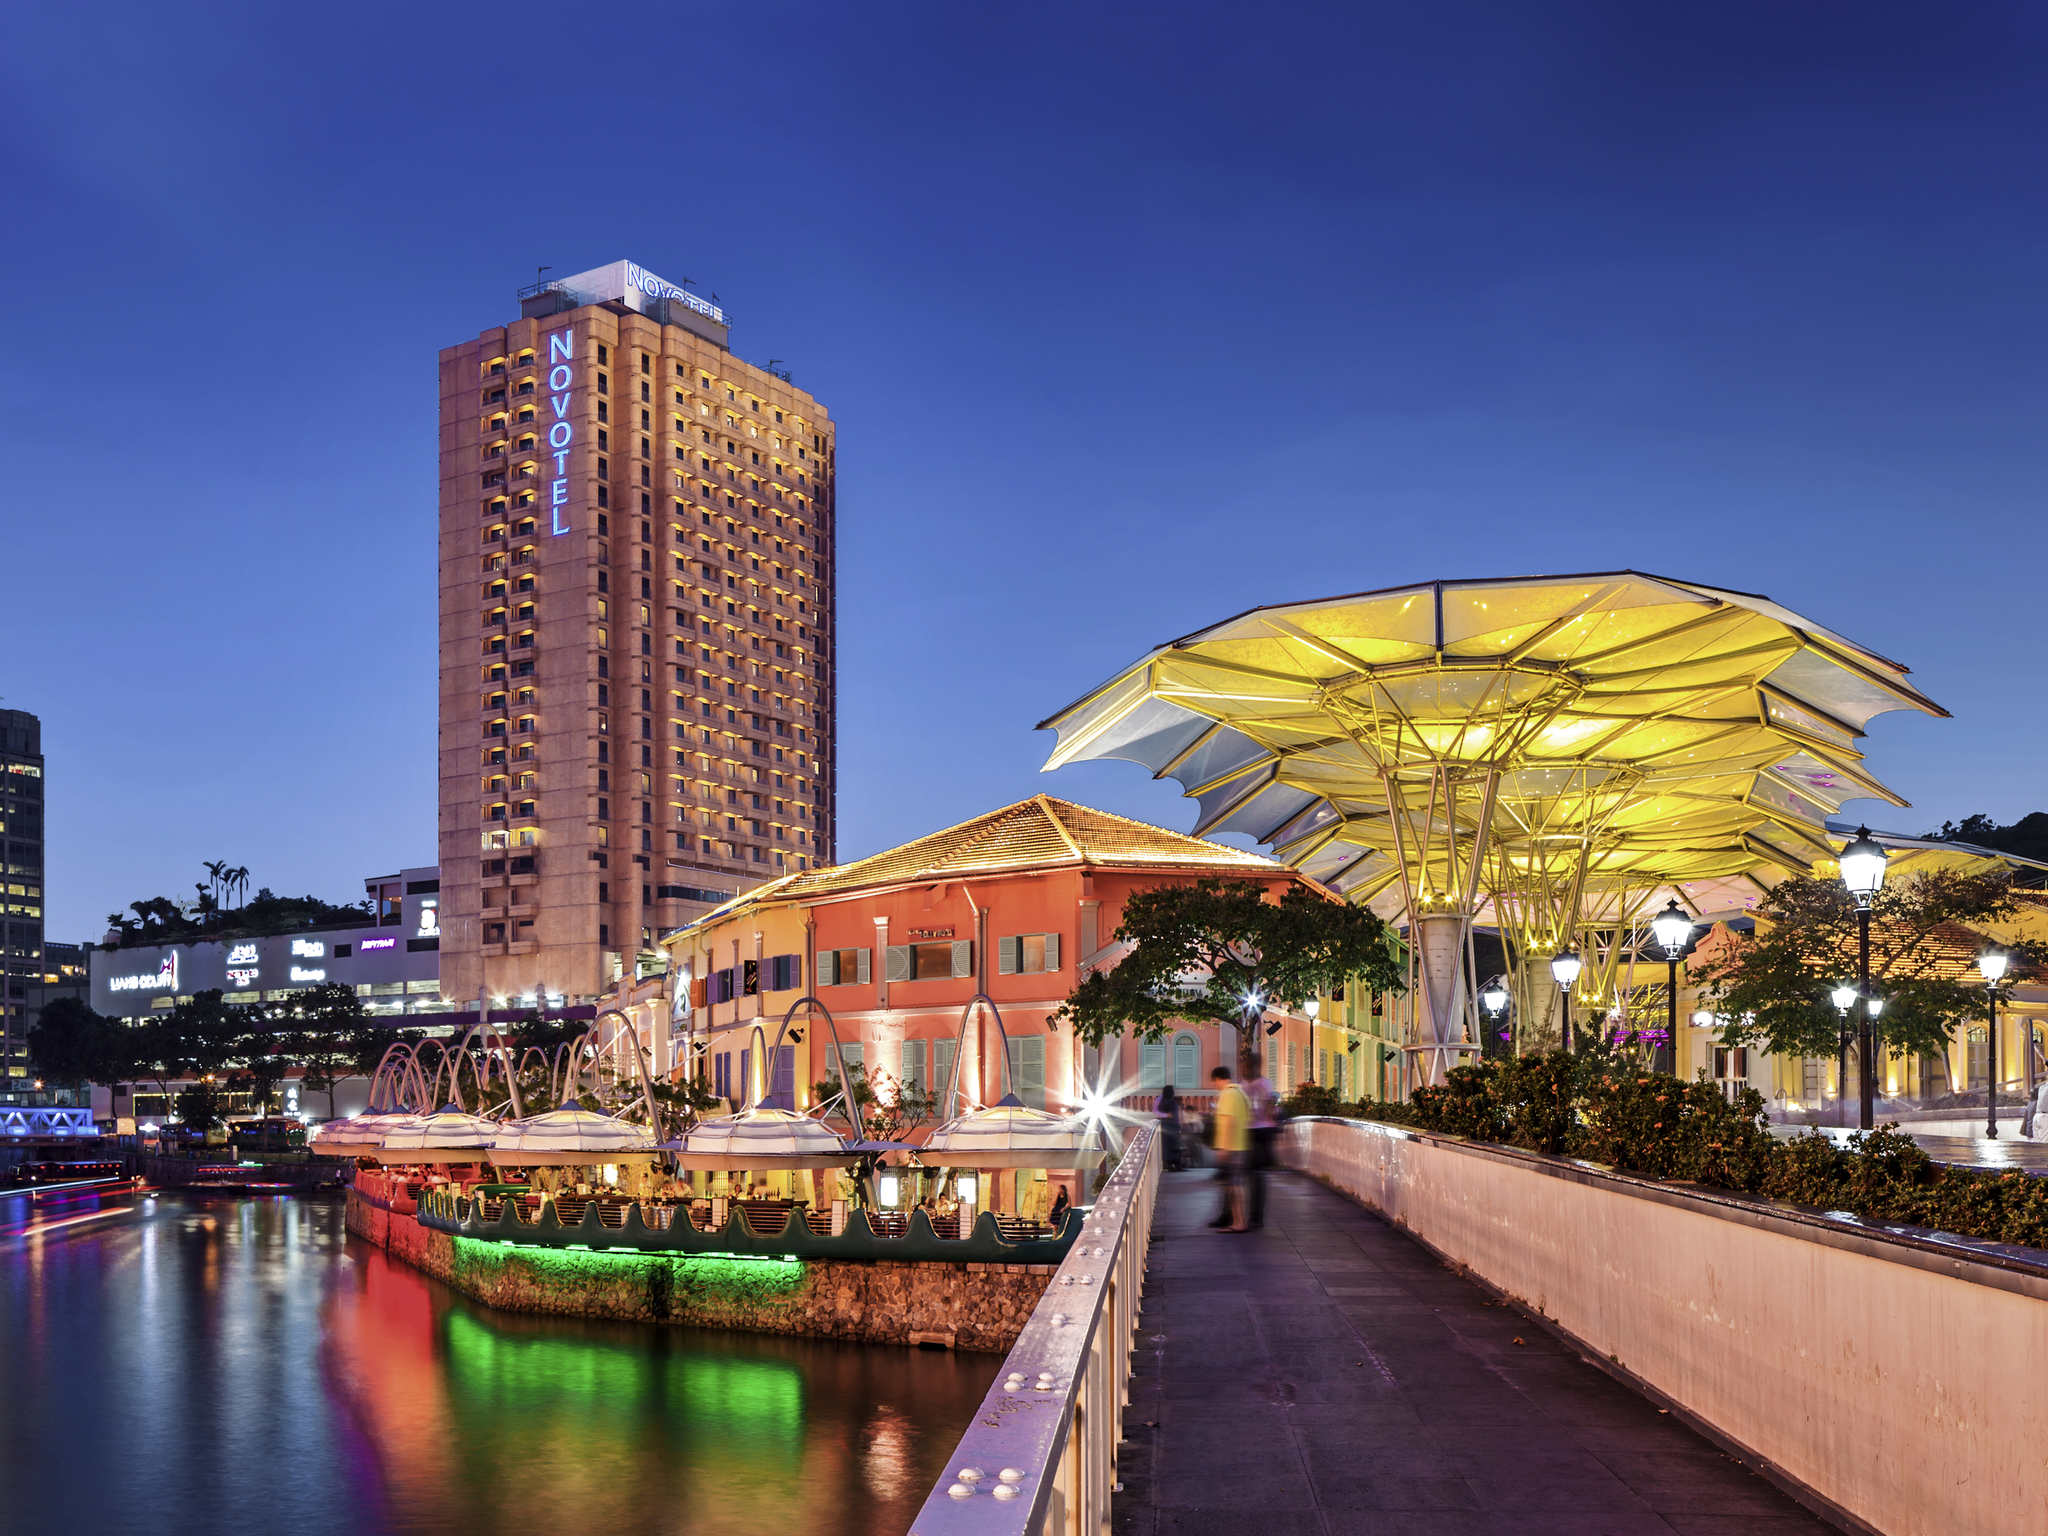 Hotel NuVe Urbane | New Boutique Hotel in Singapore